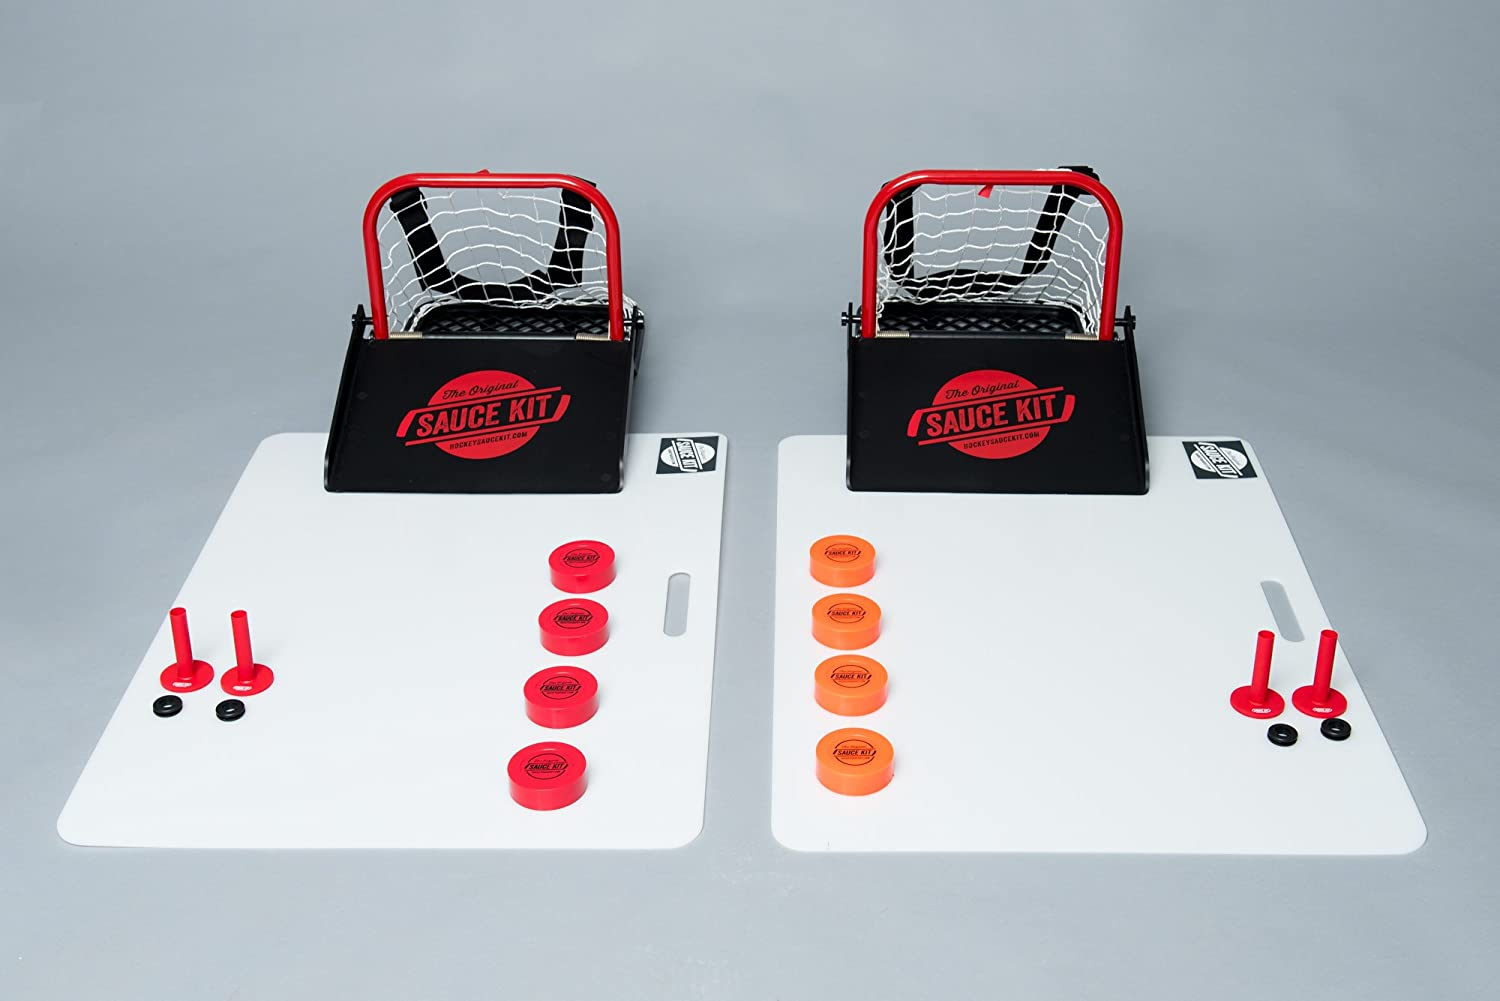 Hockey Sauce Kit The Original Games, Training & Trick Shot Kit